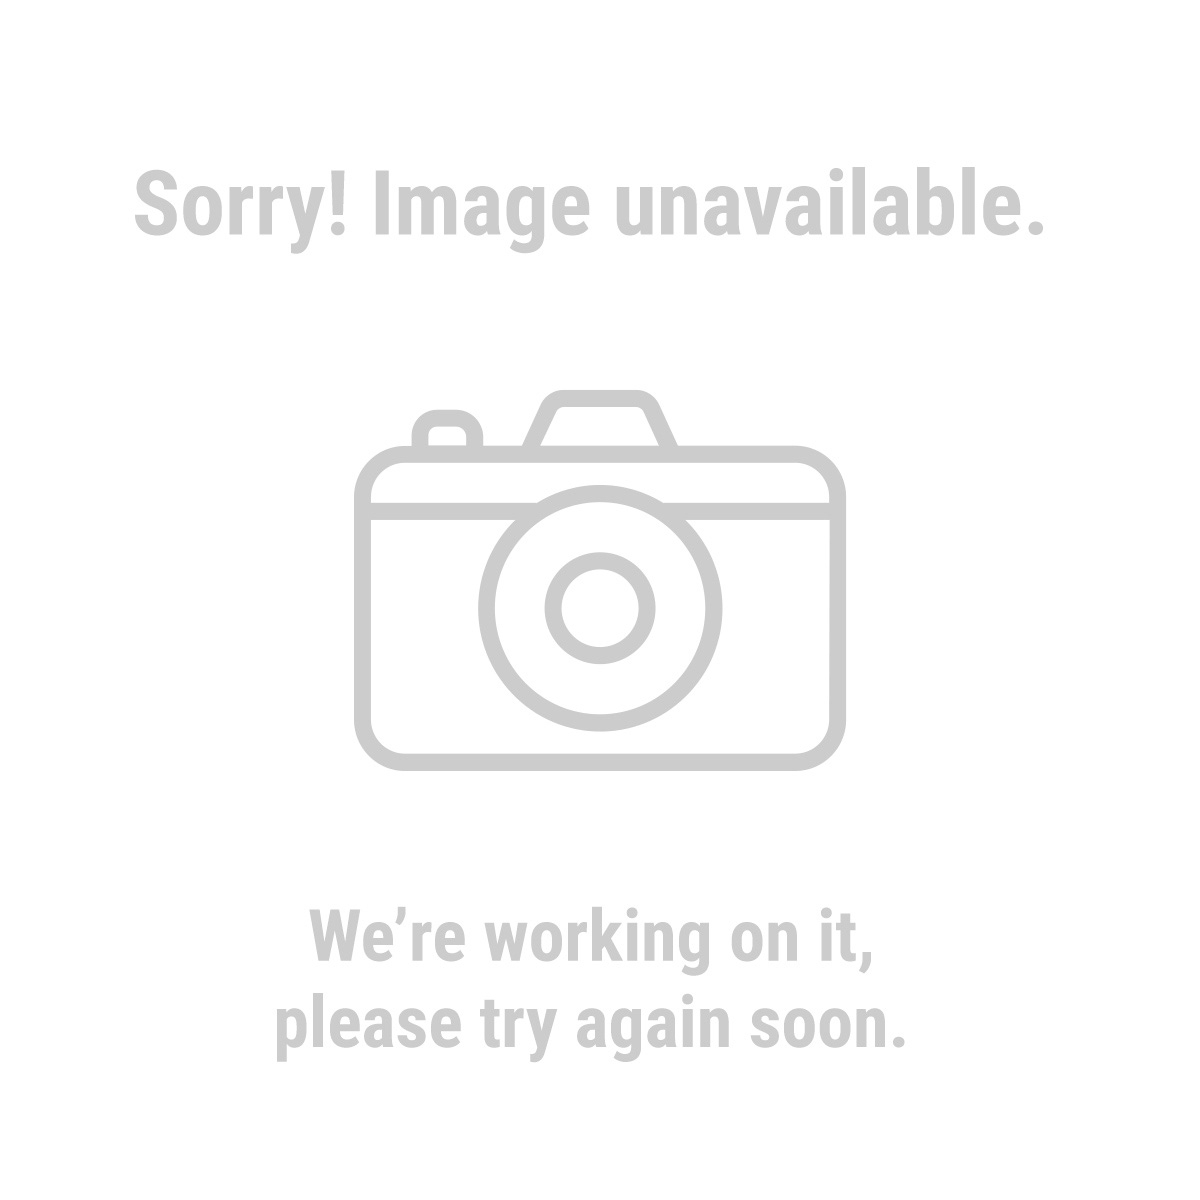 Warrior 90976 7 Piece Grinder Brush Kit